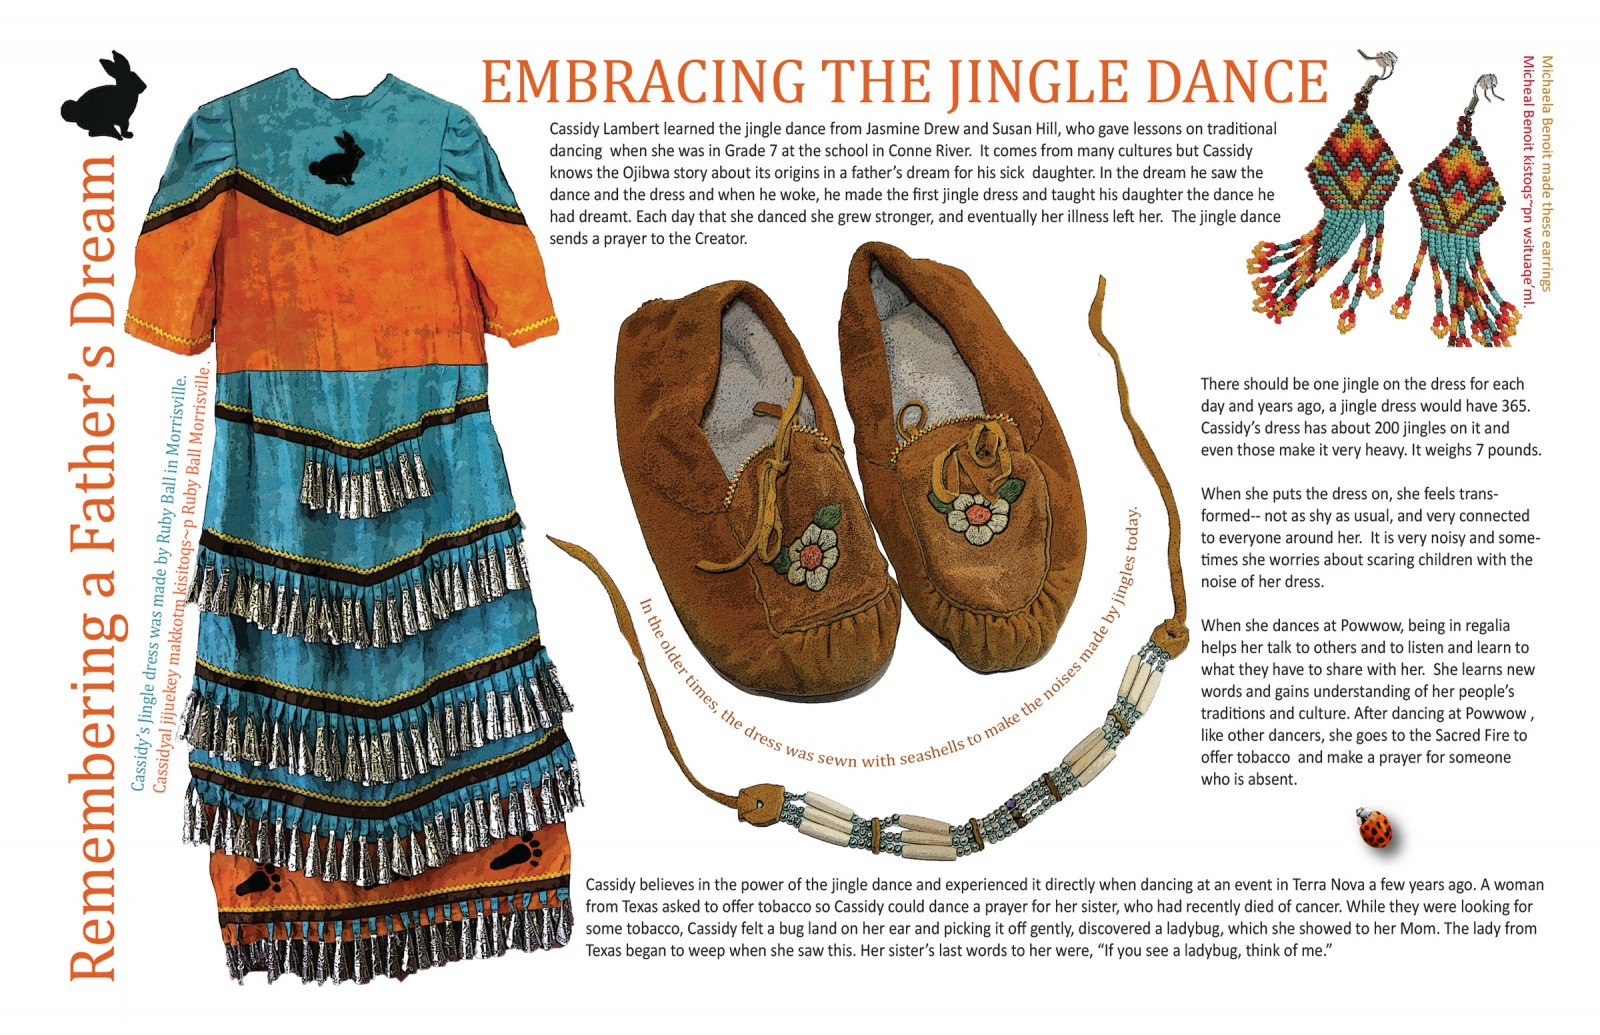 Remembering a Father's Dream: Embracing the Jingle Dance